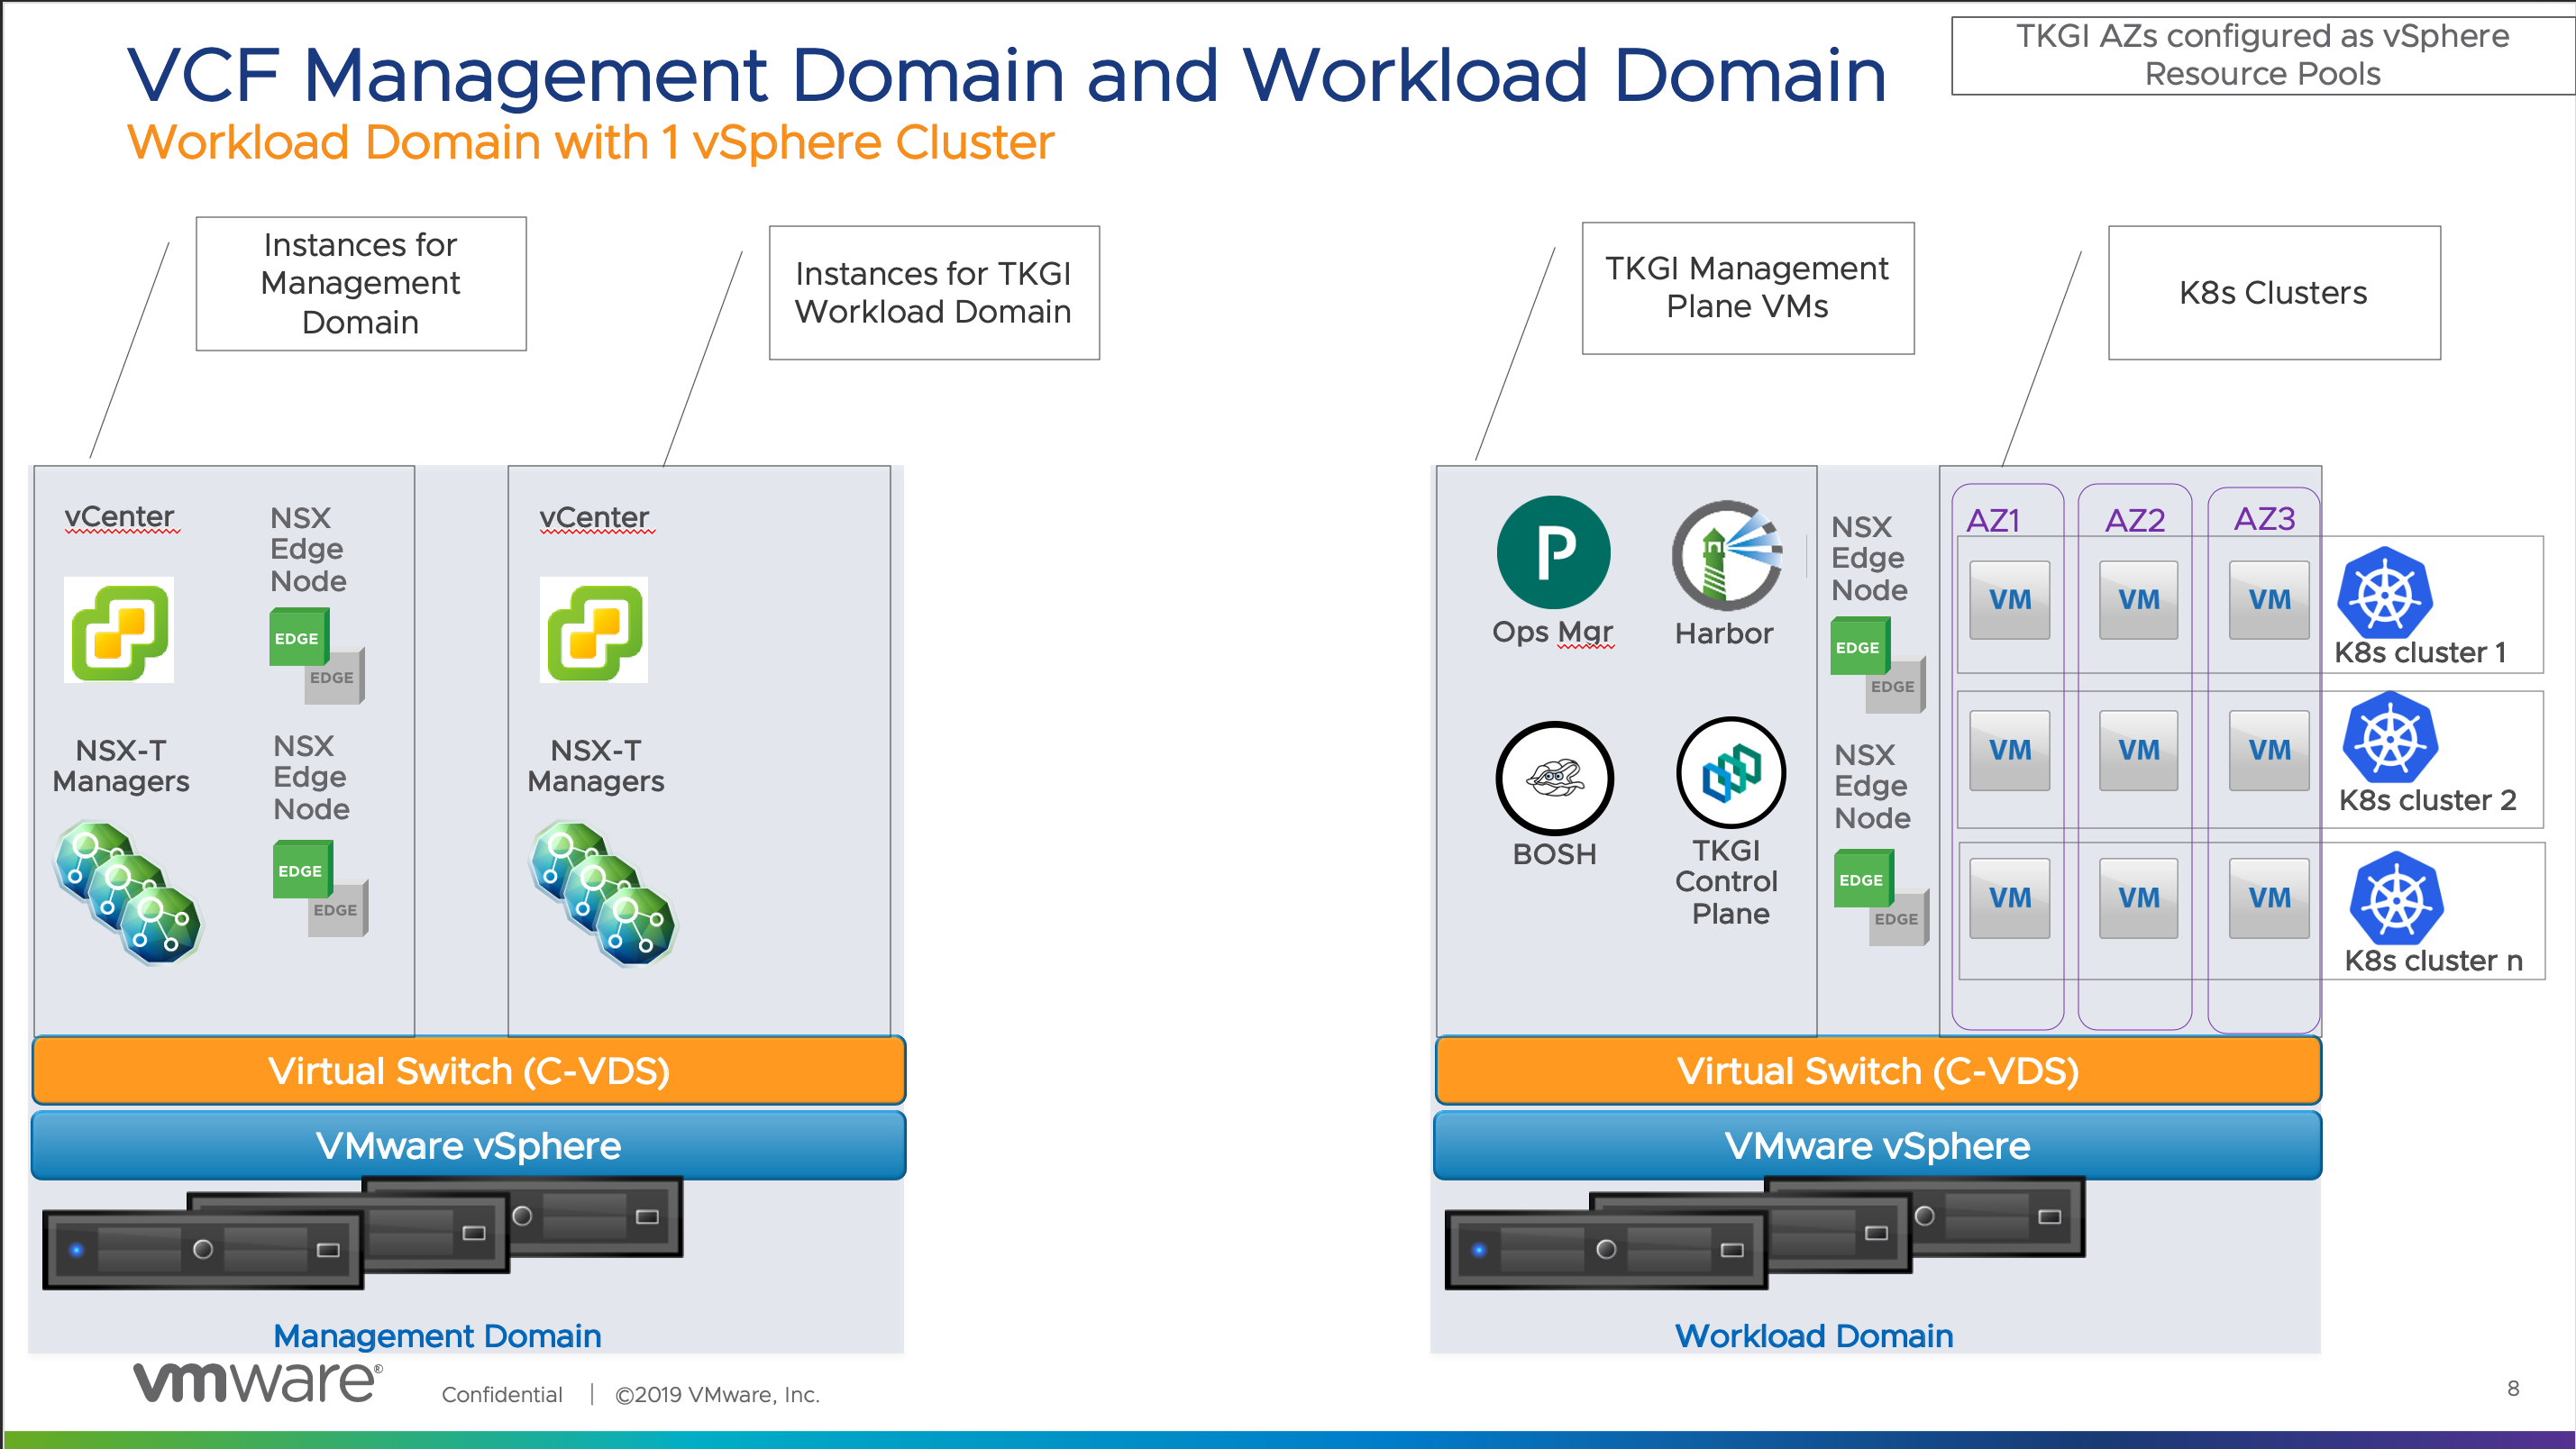 Workload Domain with 1 vSphere Cluster